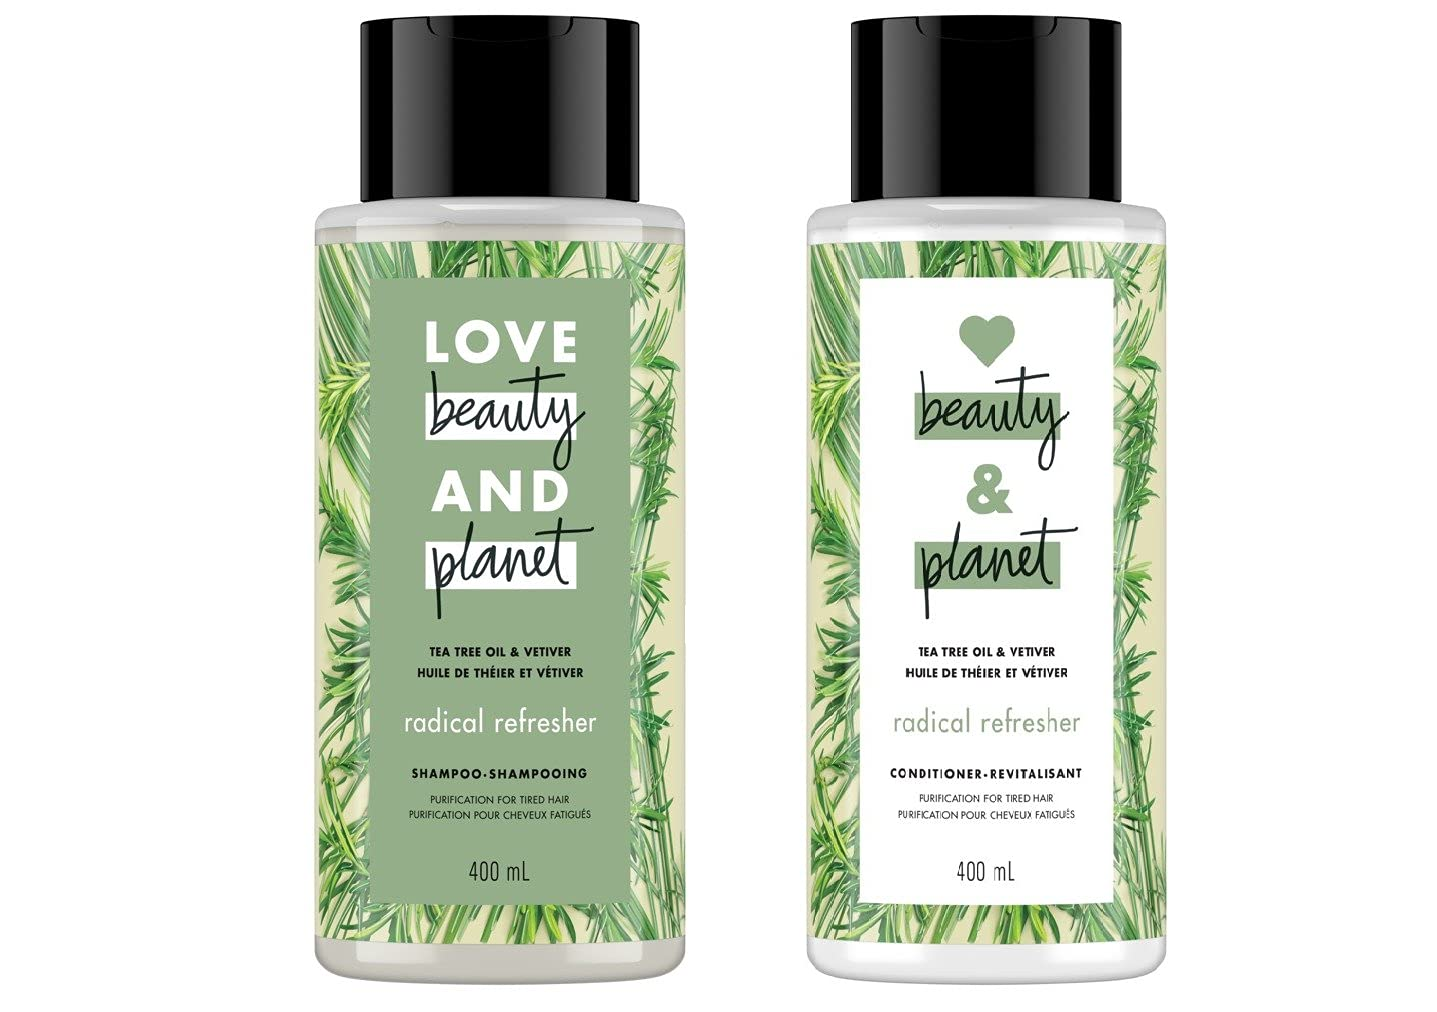 Love Beauty and Planet Tea Mesa Mall Oil Tree Vetiver Rare Refresher Radical